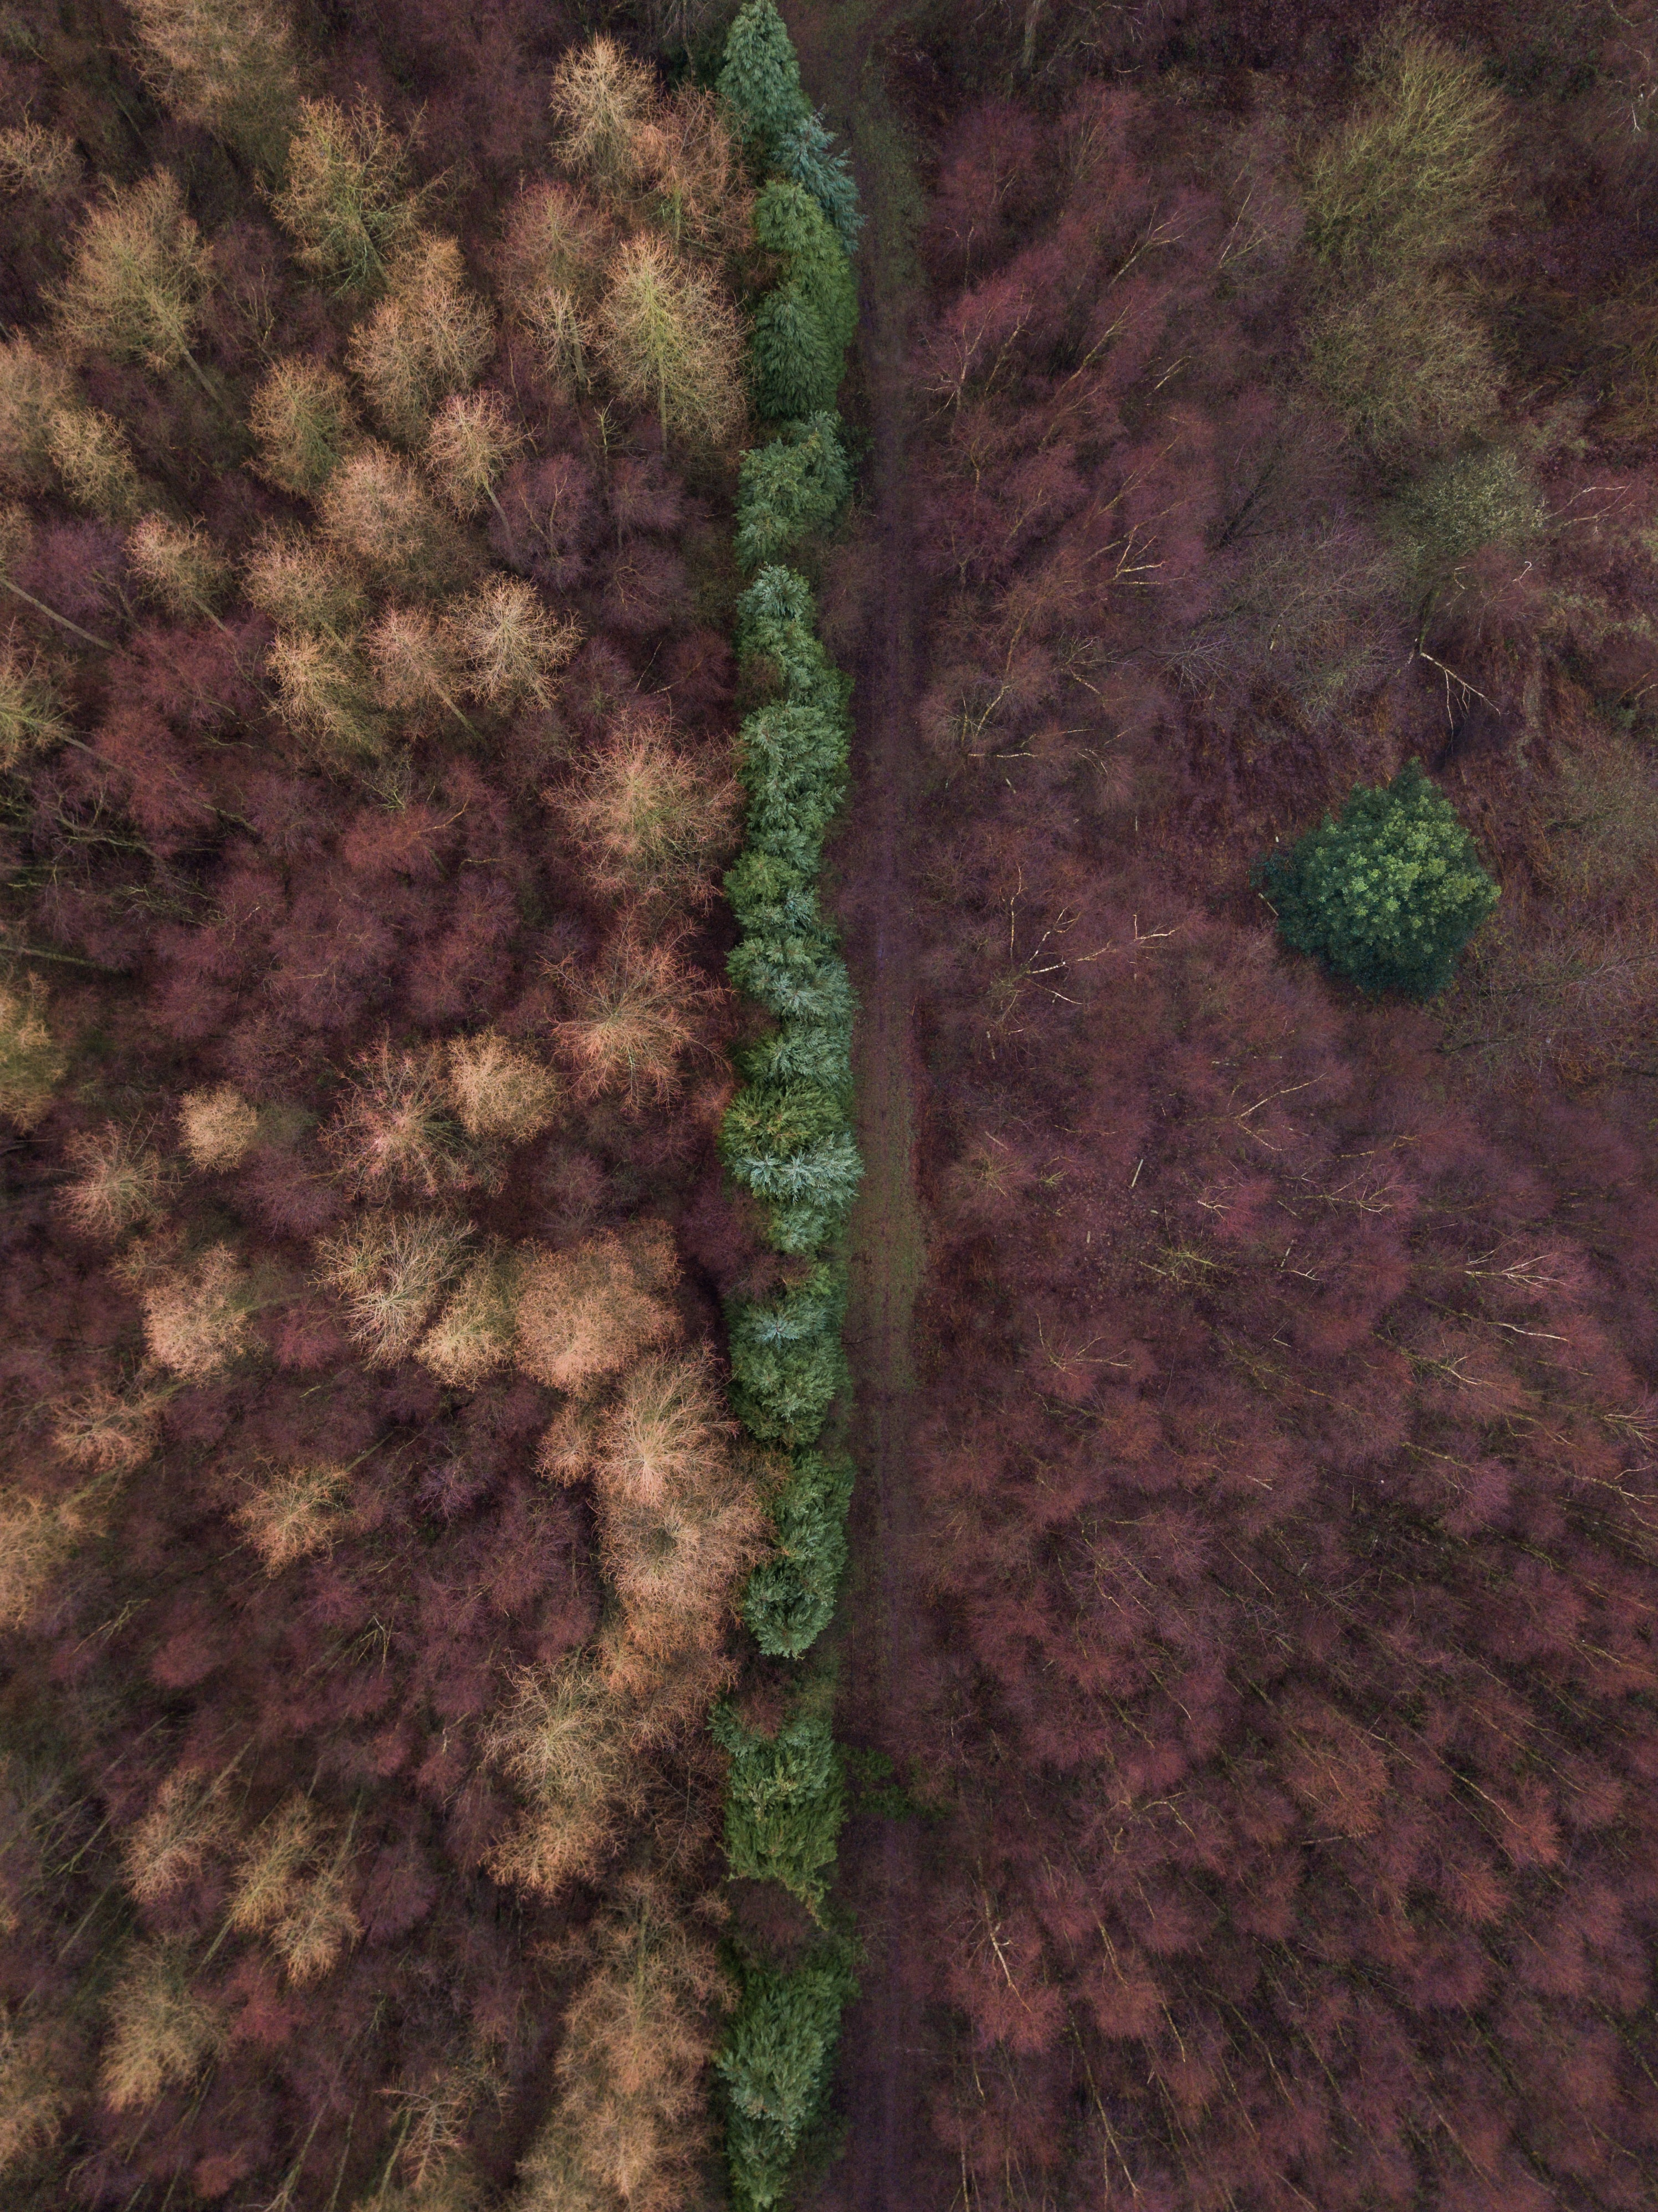 aerial photography of tree lined dirt road at daytime